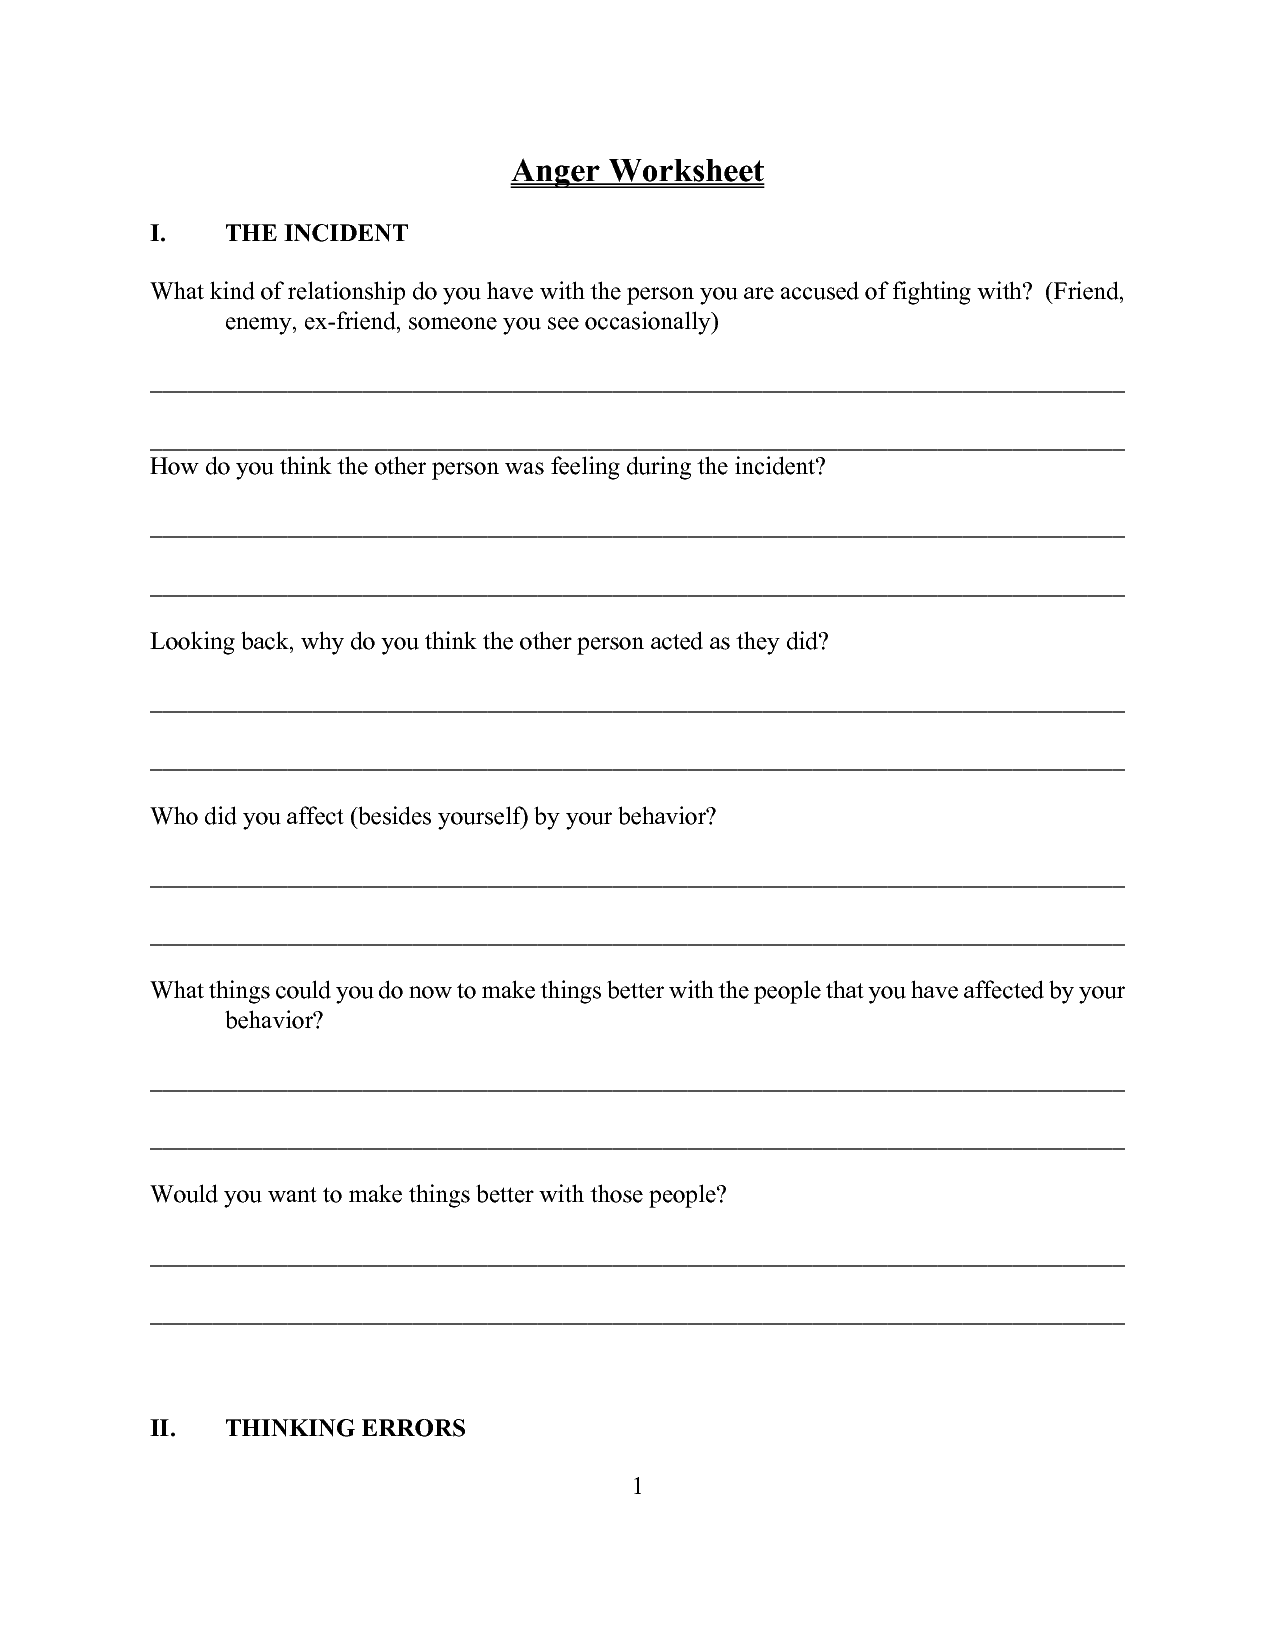 A Simple Az On Speedy Products In Anger Management Worksheets – Anger Worksheet